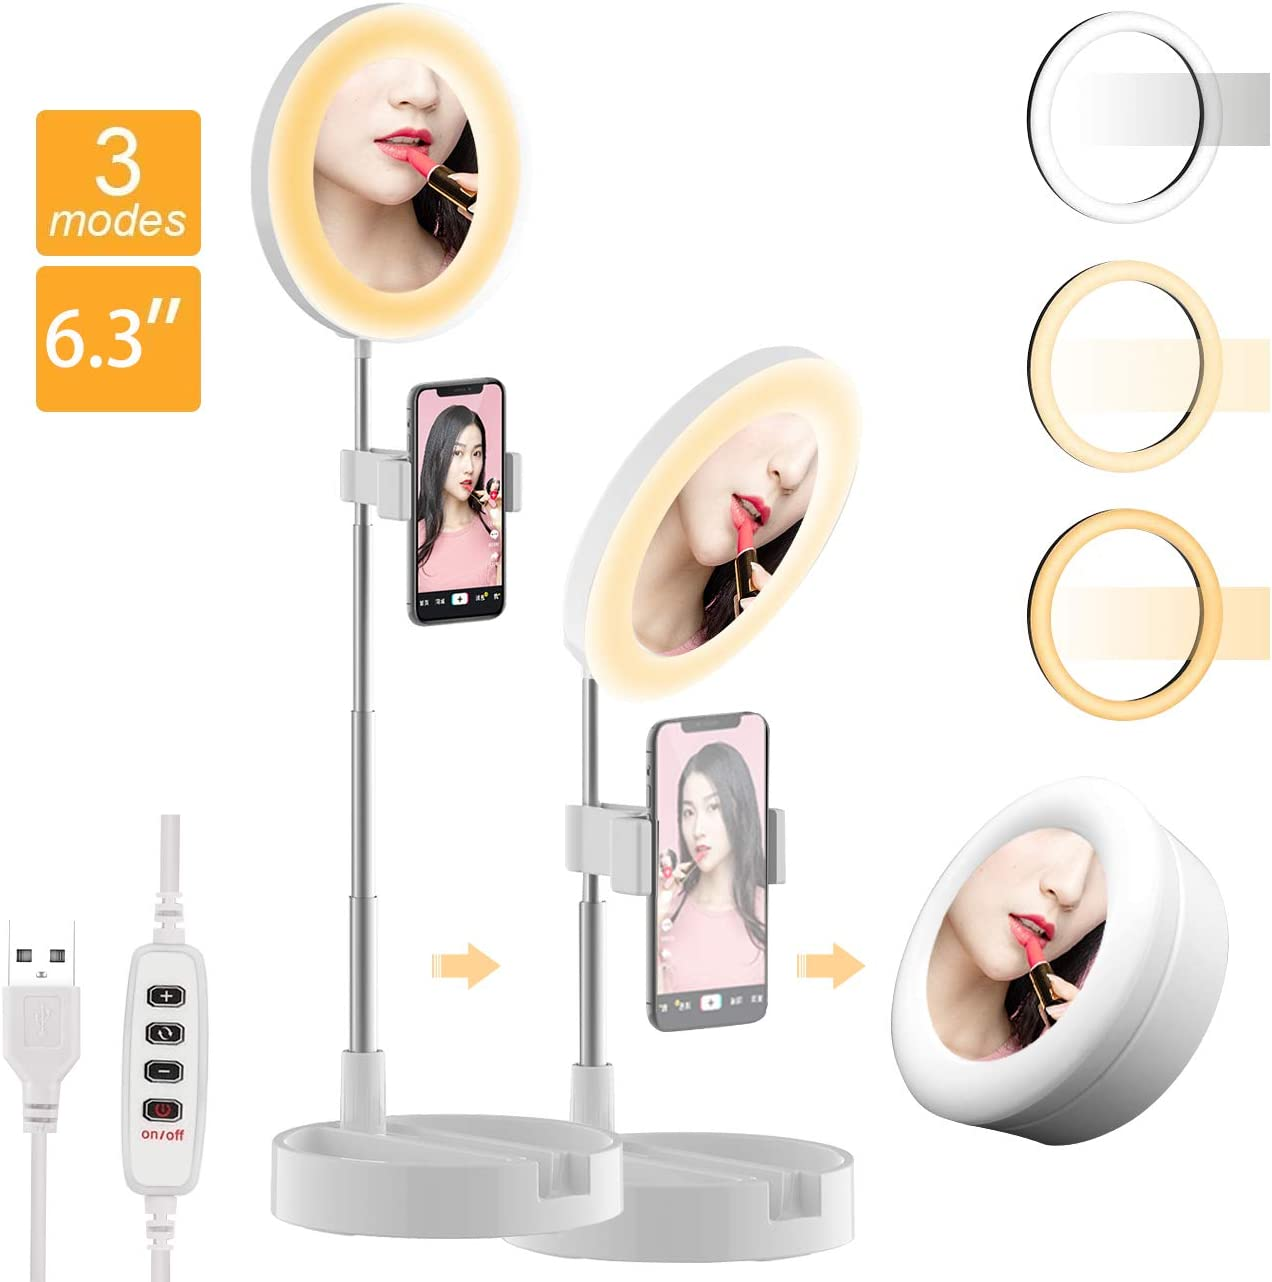 USB 6.3'' Portable Ring Light 3 Color Modes and 10 Brightness Foldable Makeup Light with Mirror, Stand and Phone Holder for Vlogging YouTube Video Shooting Make up (White)